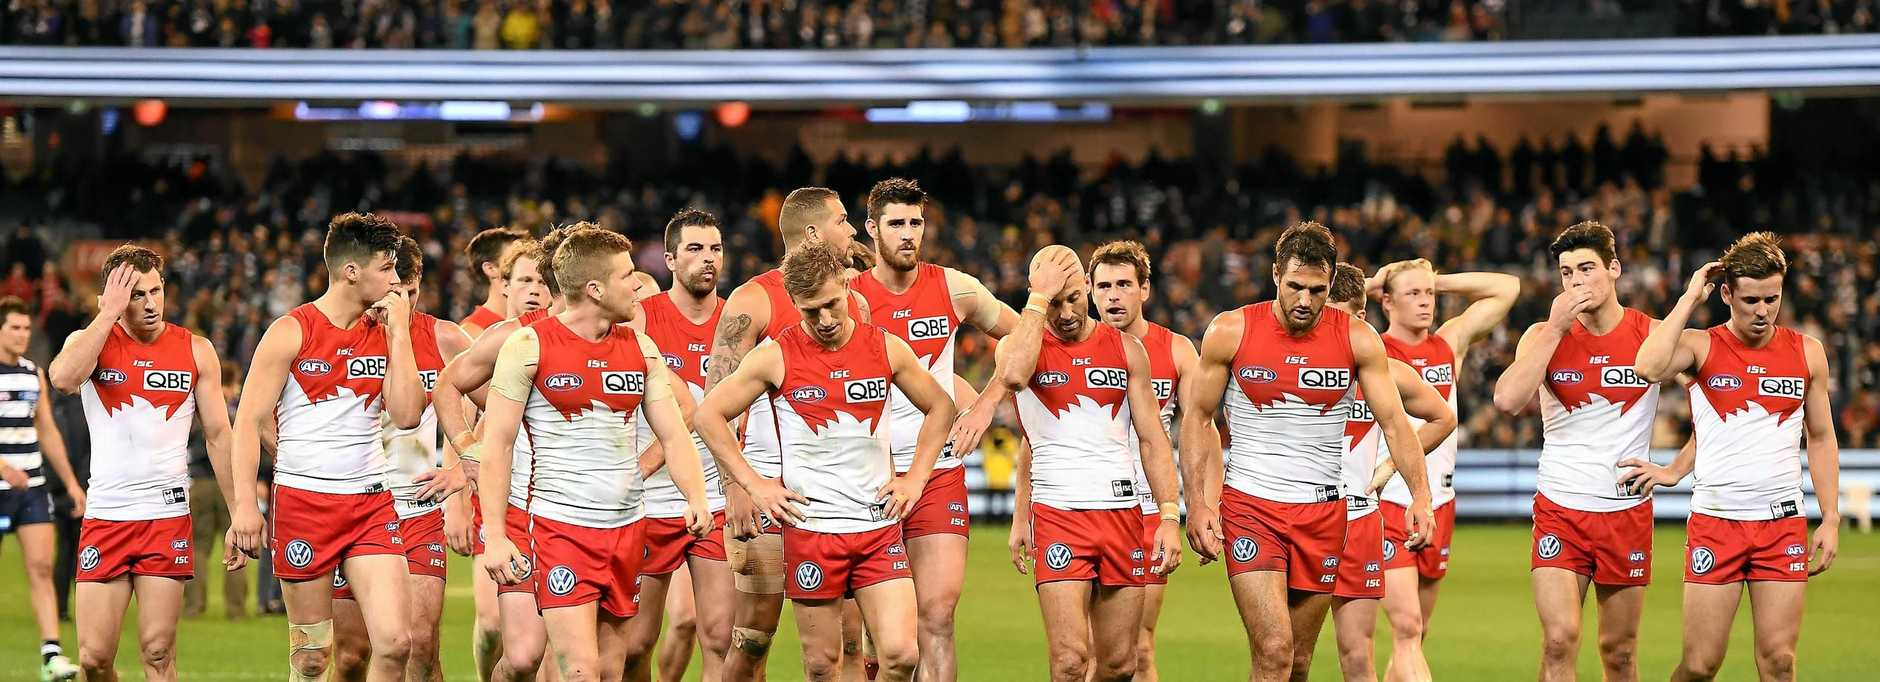 The Swans are seen after the second semi-final between the Geelong Cats and the Sydney Swans at MCG in Melbourne, Friday, September 15, 2017. (AAP Image/Julian Smith) NO ARCHIVING, EDITORIAL USE ONLY